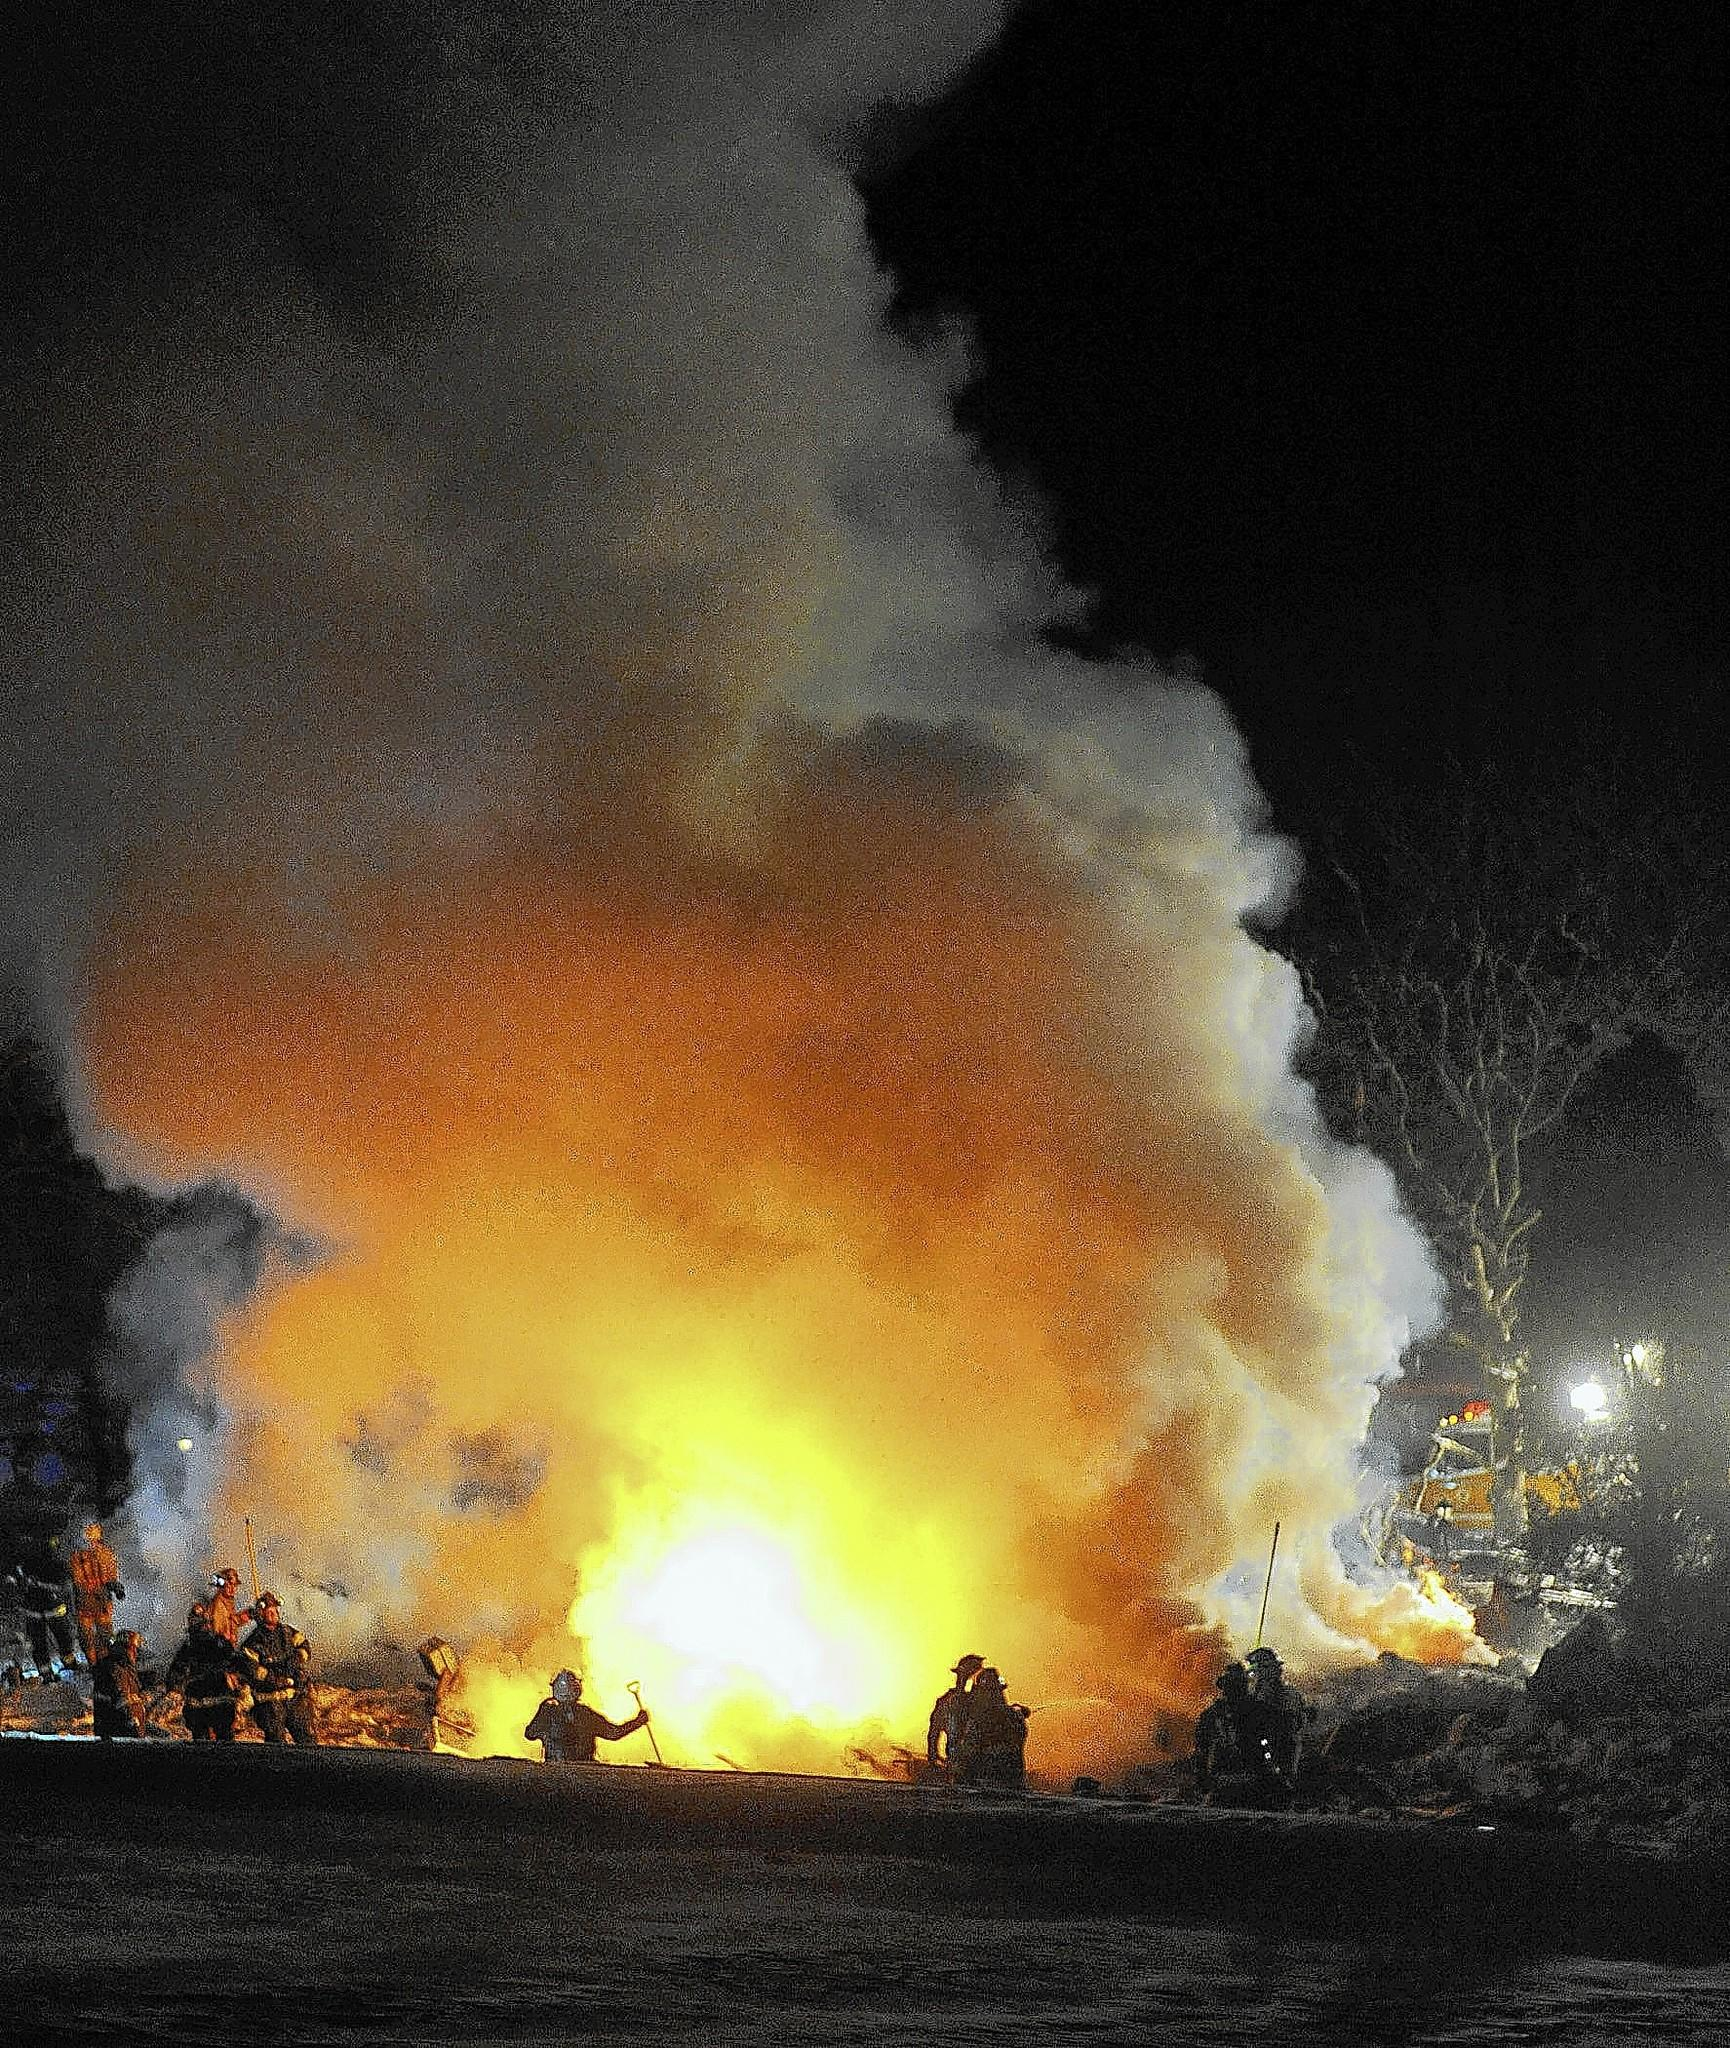 Volunteer firefighters from the Klecknersville Rangers and several other departments responded to an explosion at 118 Hickory Hills Drive the Hickory Hills mobile home park Feb. 14. State police on Monday ruled the cause of the fire was a propane leak. William D. Neith Sr., 65, was killed in the fire.